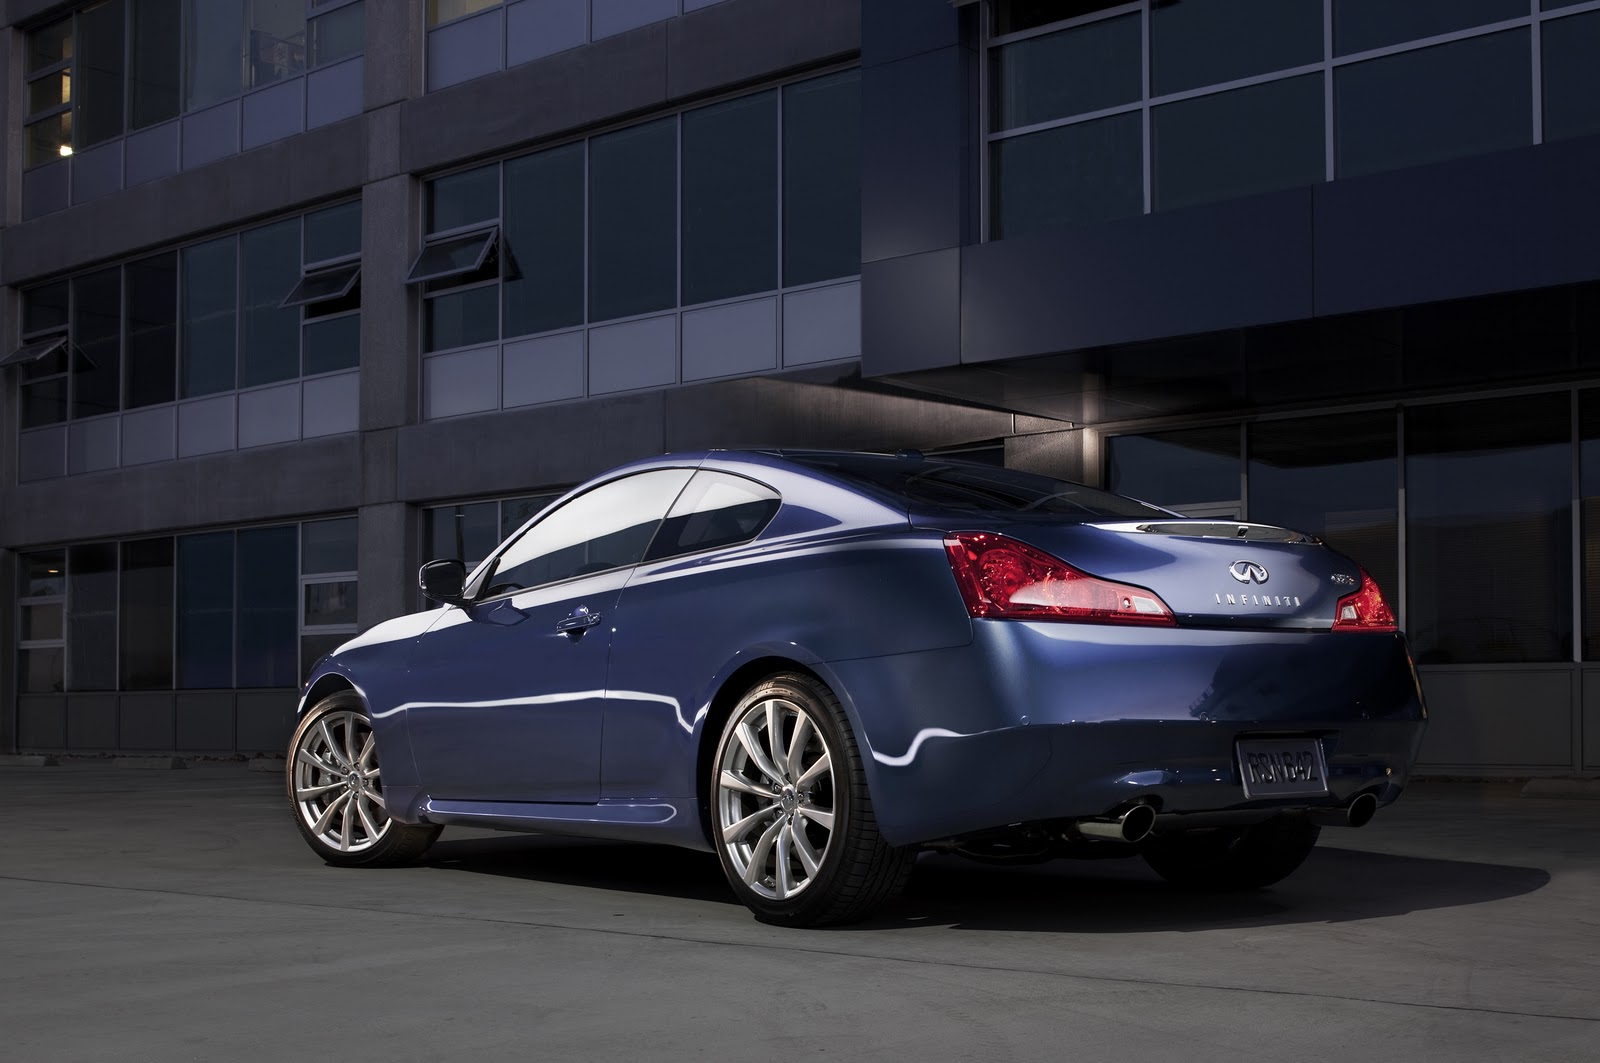 Jeffcarsyour auto industry connection 2010 infiniti g37 other options available on the g37 coupe include a navigation system high friction brake pads illuminated kick plates and maple interior accents vanachro Image collections